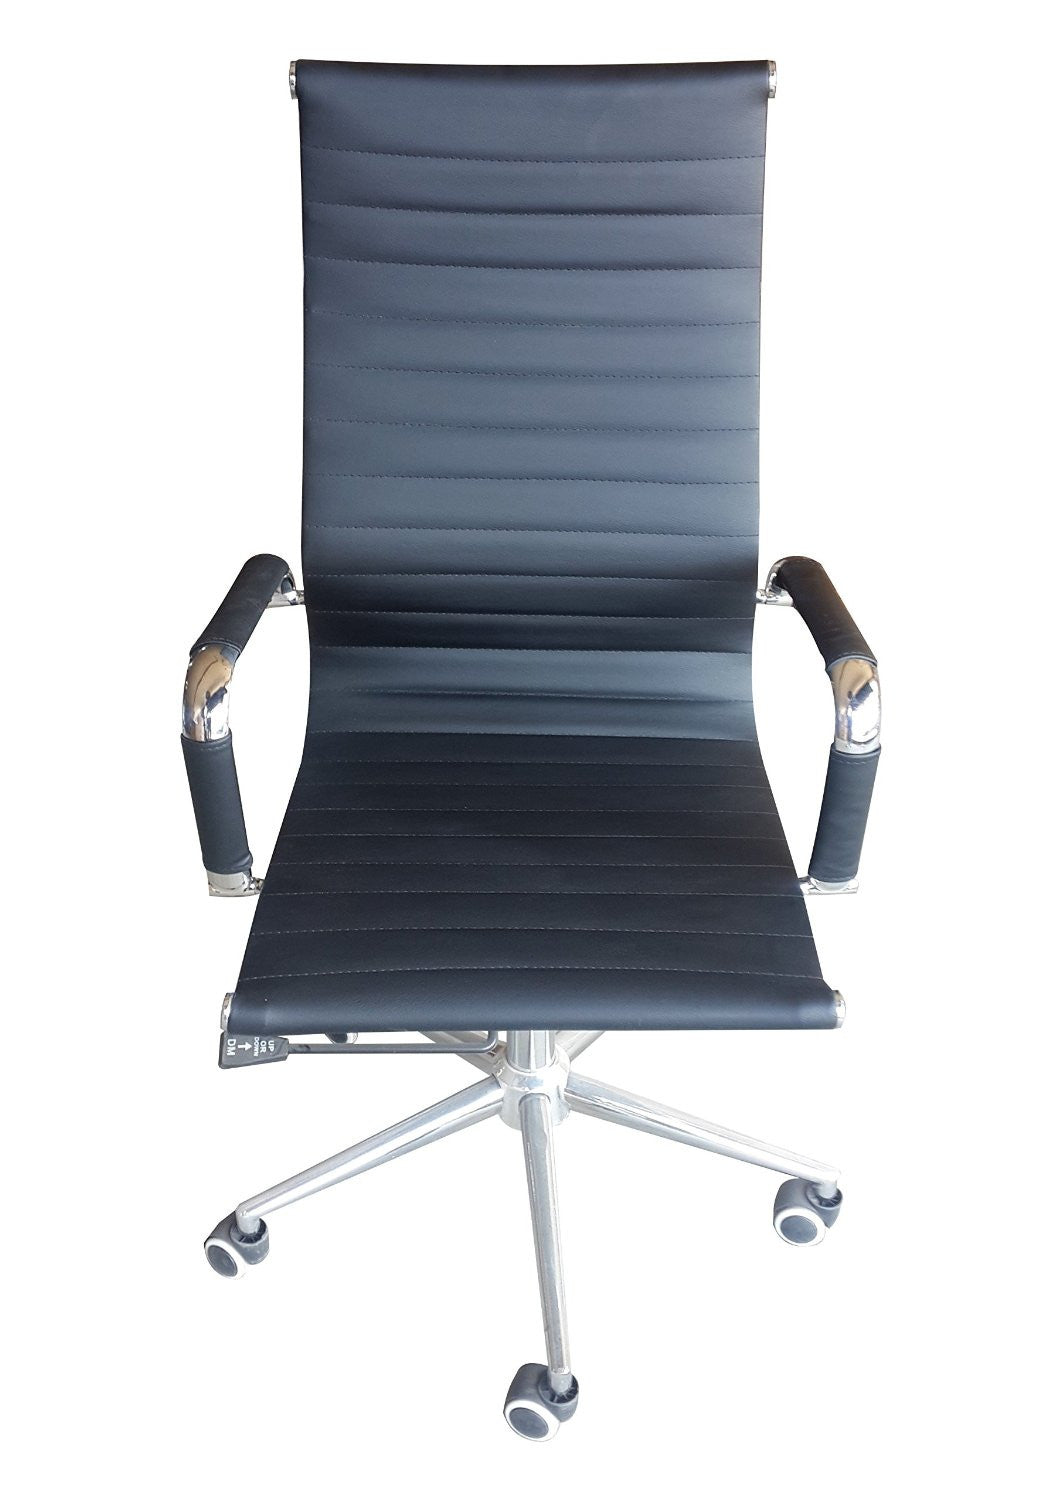 Office chair back view -  Classic Eames Replica Black Pu Leather High Back Chair With Chrome Arms Front View